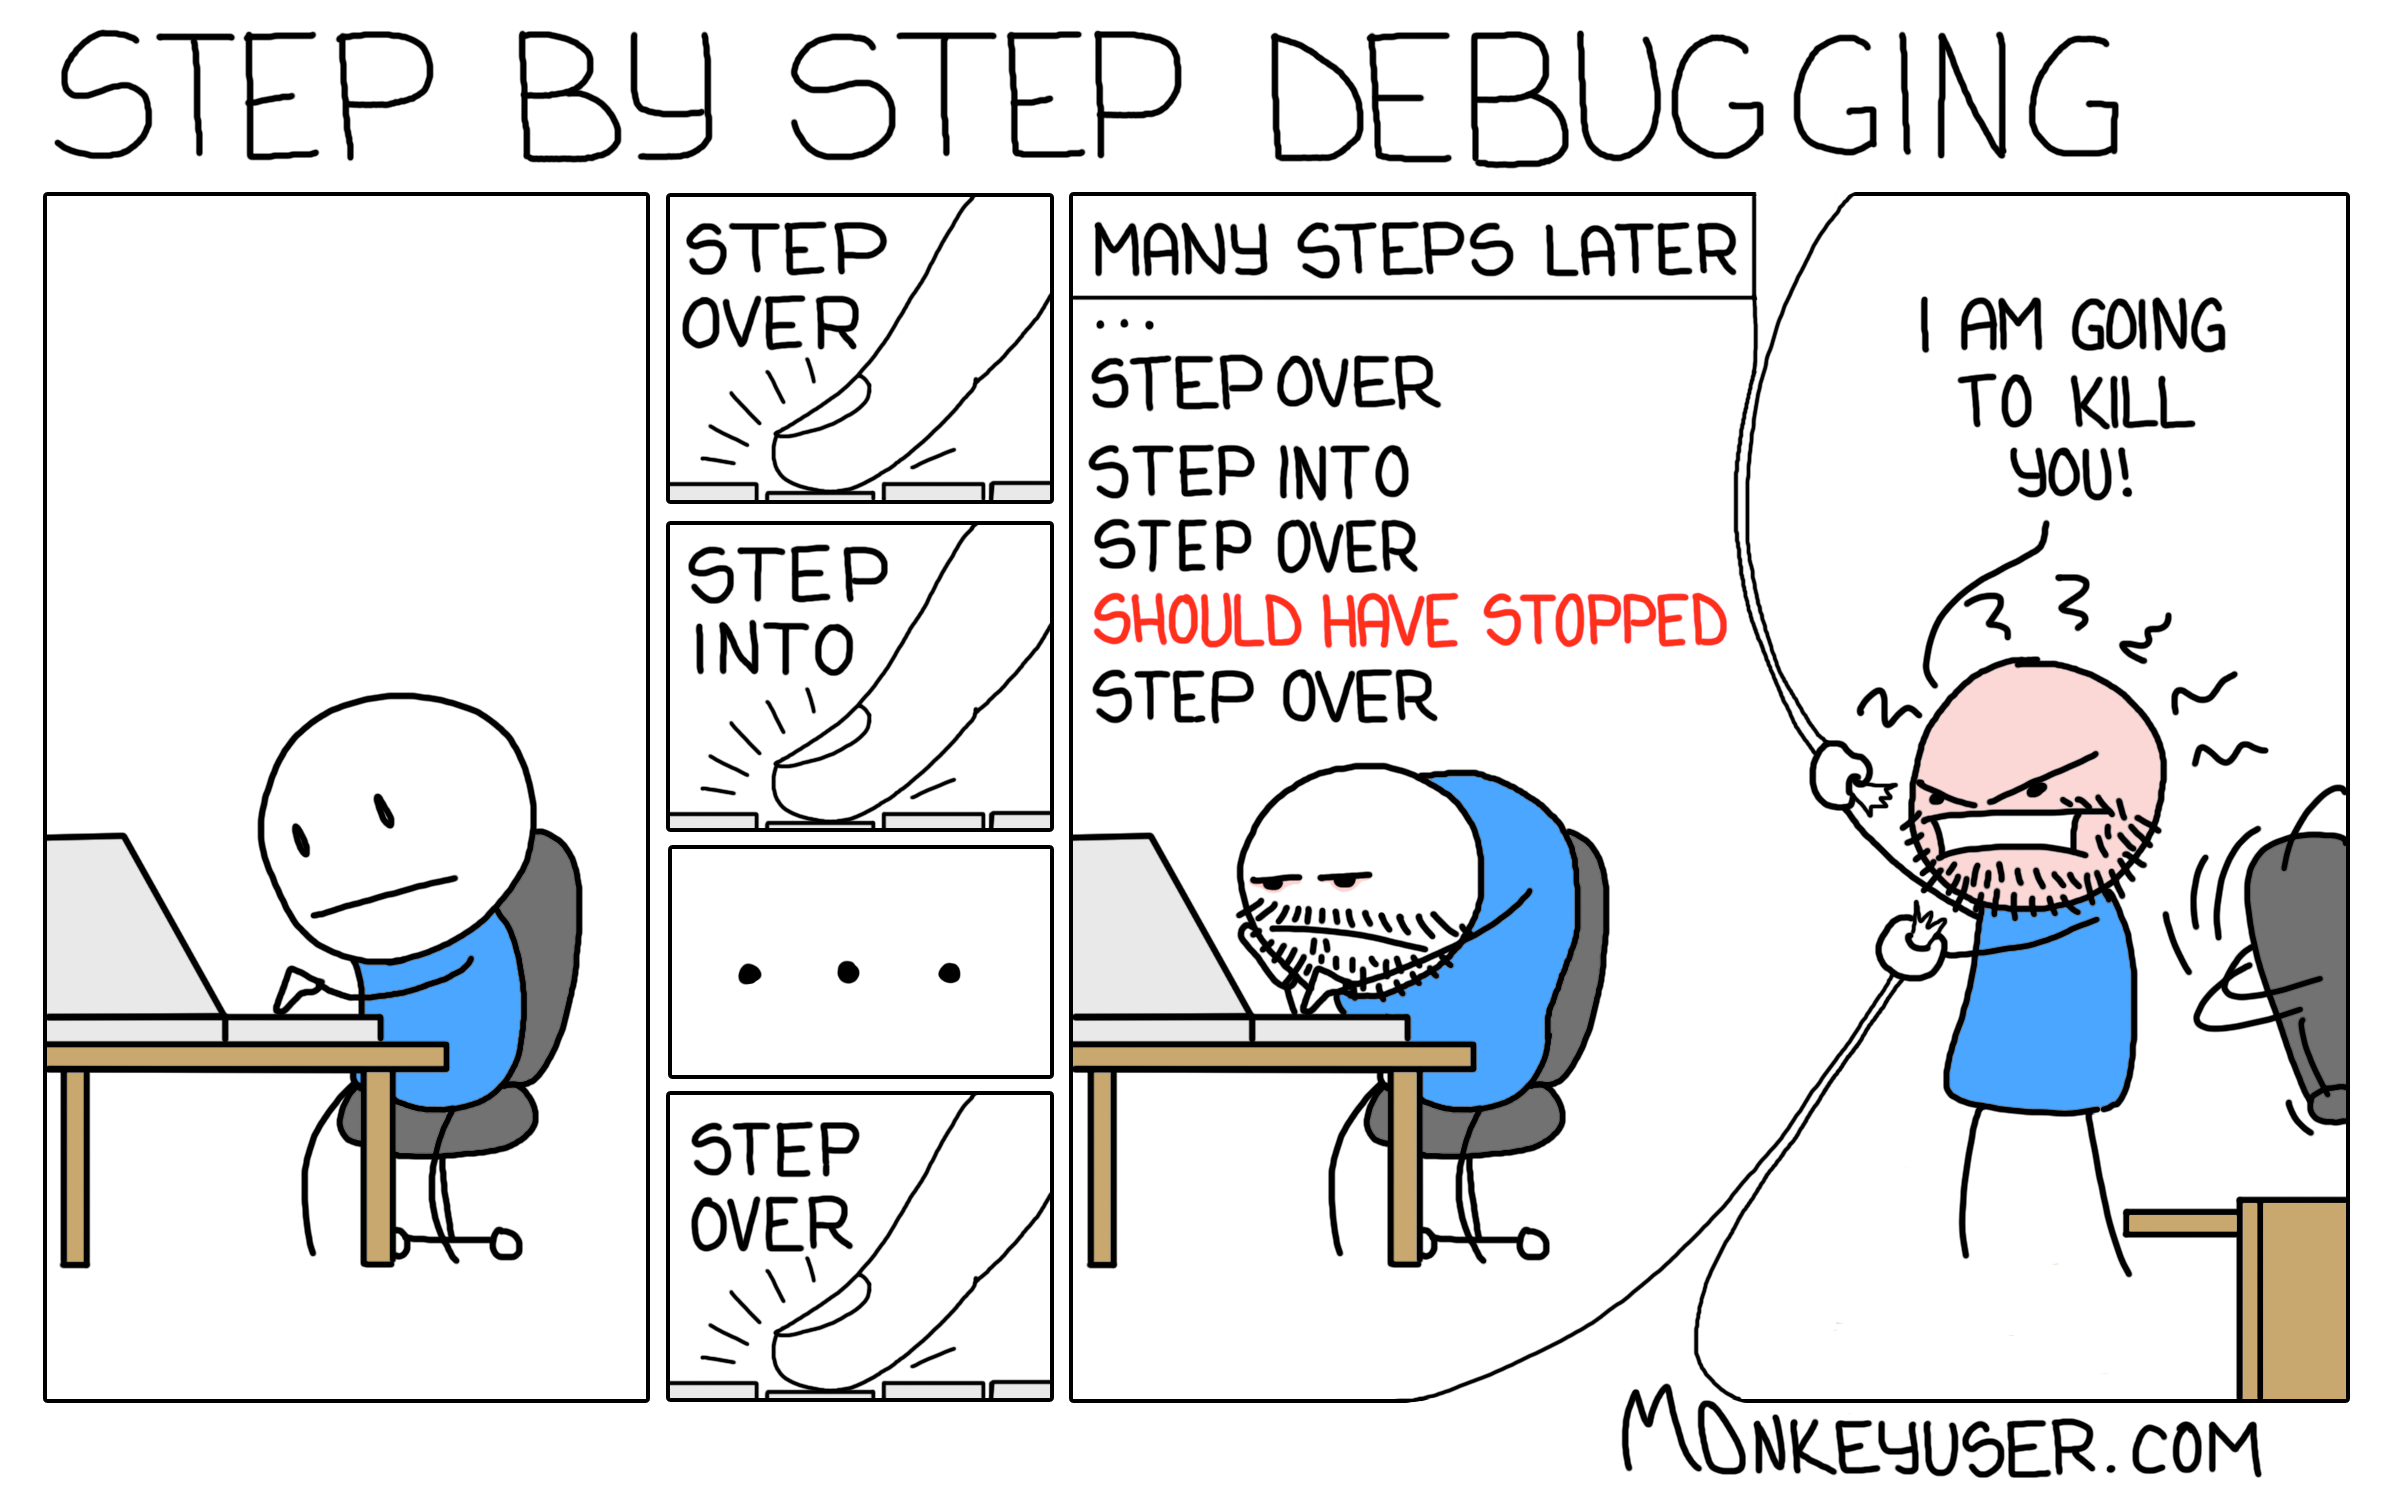 Step by step debugging cartoon